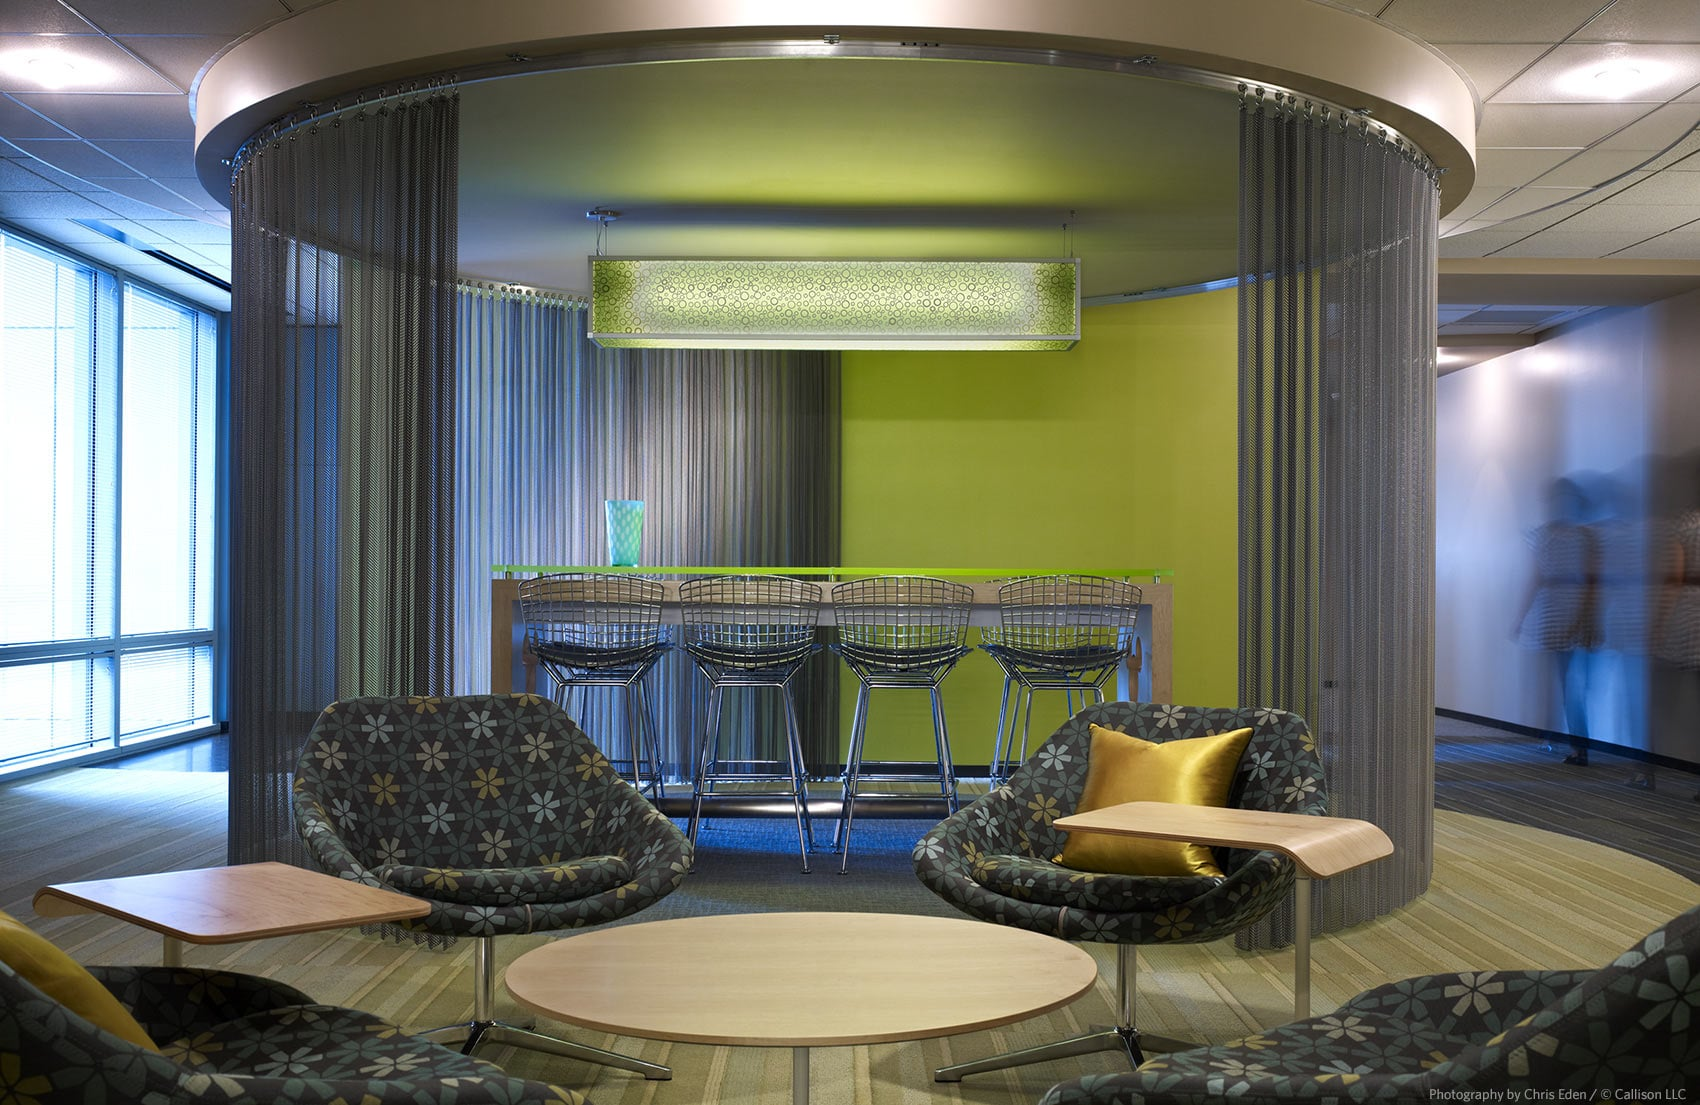 Global Entertainment Company - Interior conference and meeting space